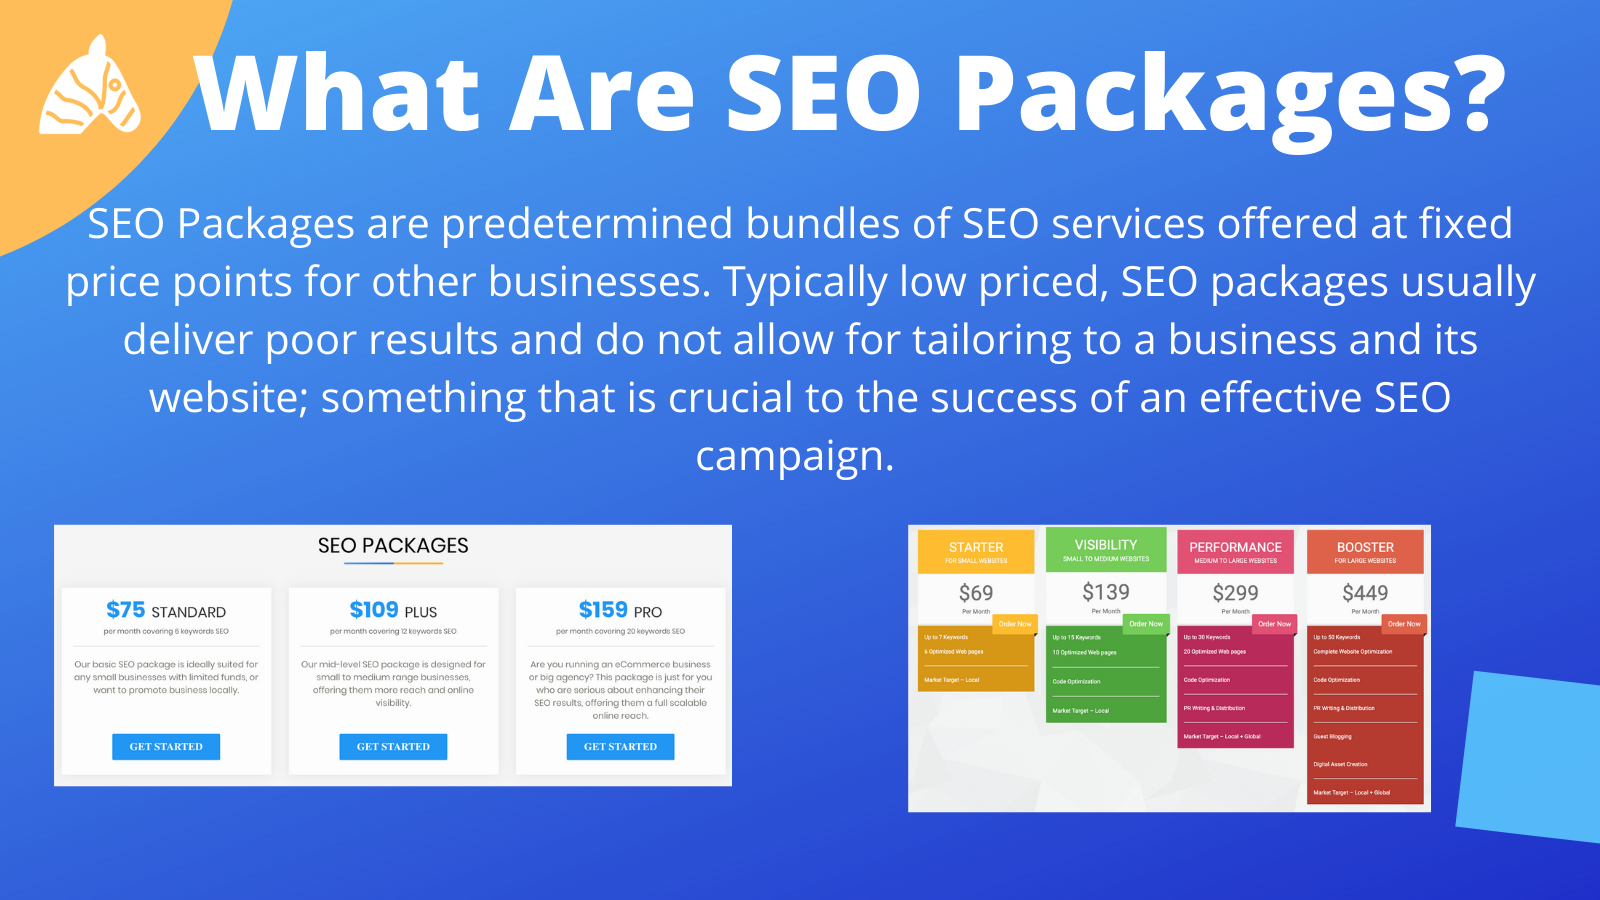 SEO package examples and information